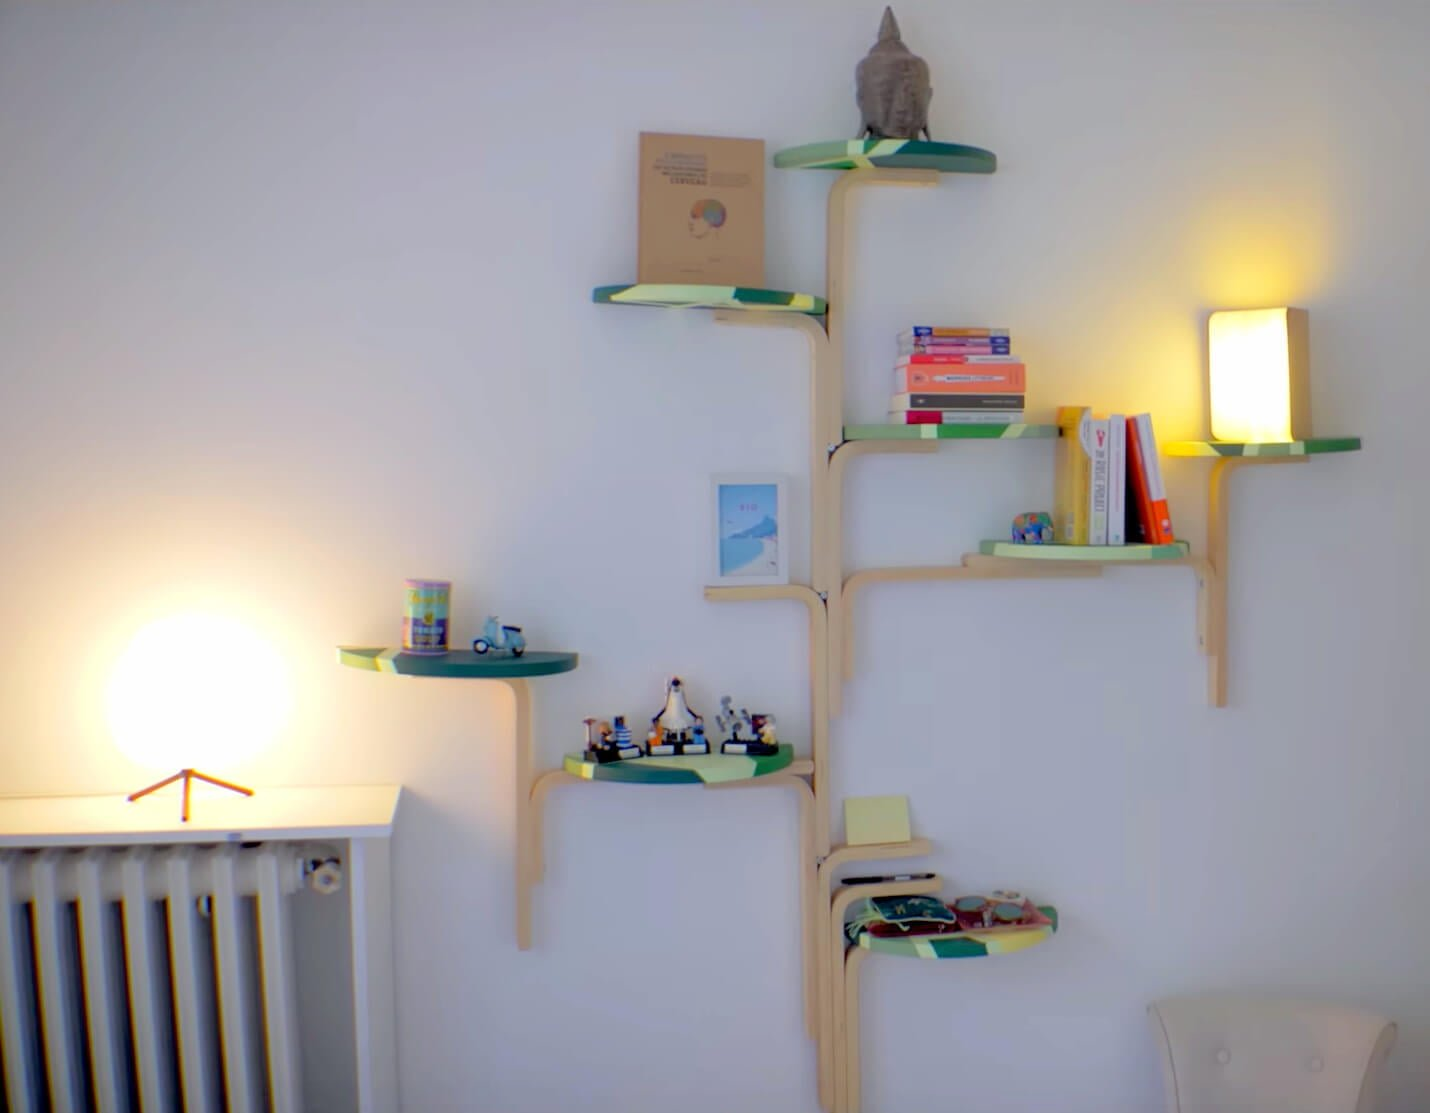 Tree Shelf - FROSTA X goes green